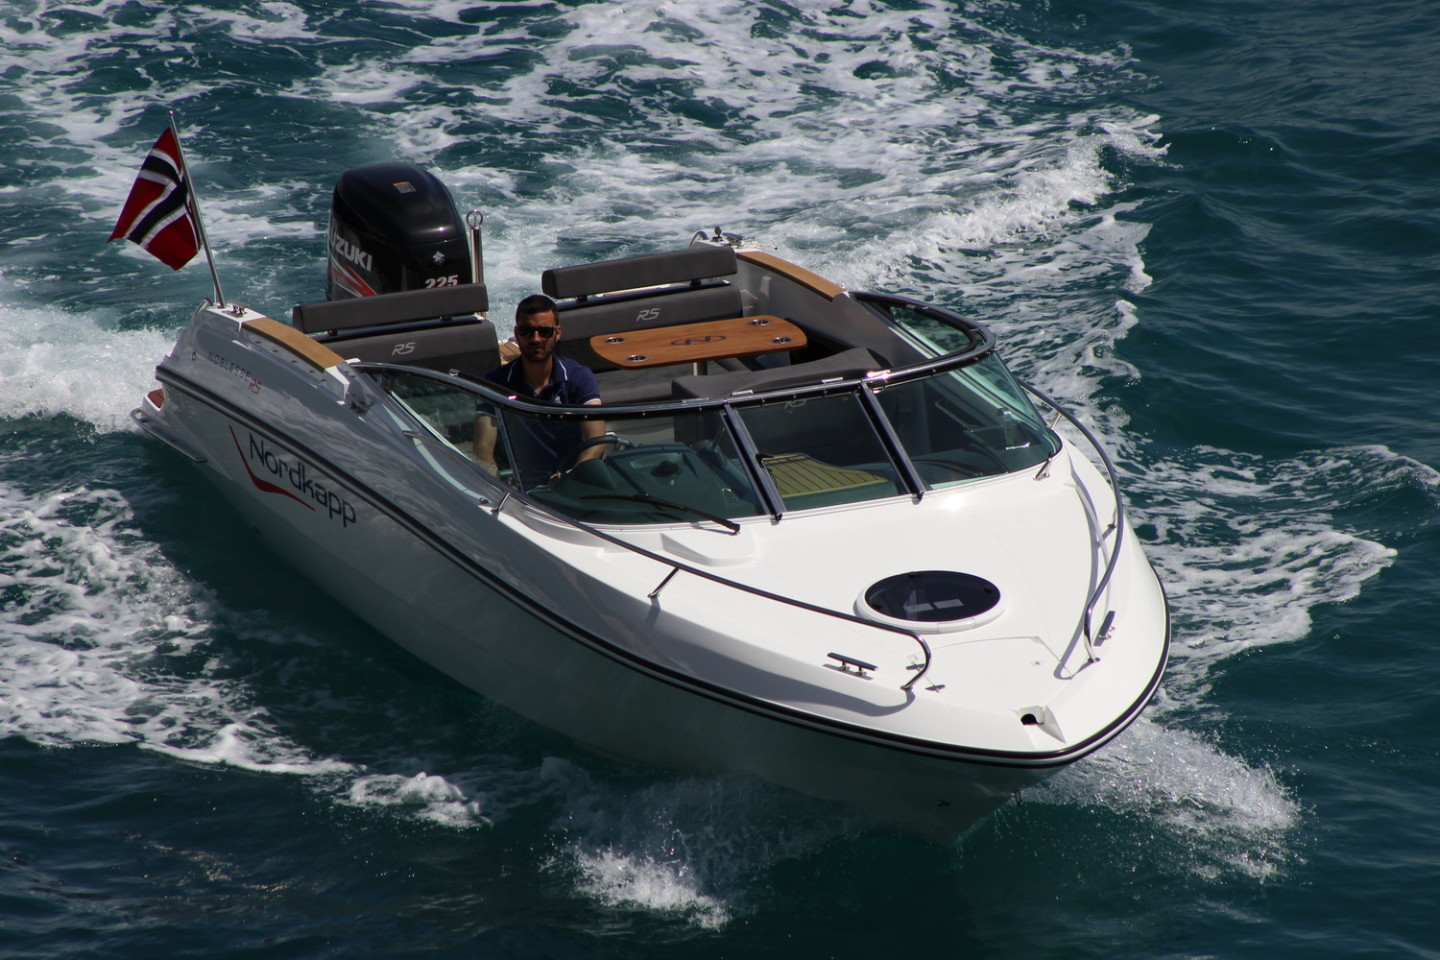 Nordkapp Noblesse 820 RS summer rent a boat for a day speedboat daily getaway in summer